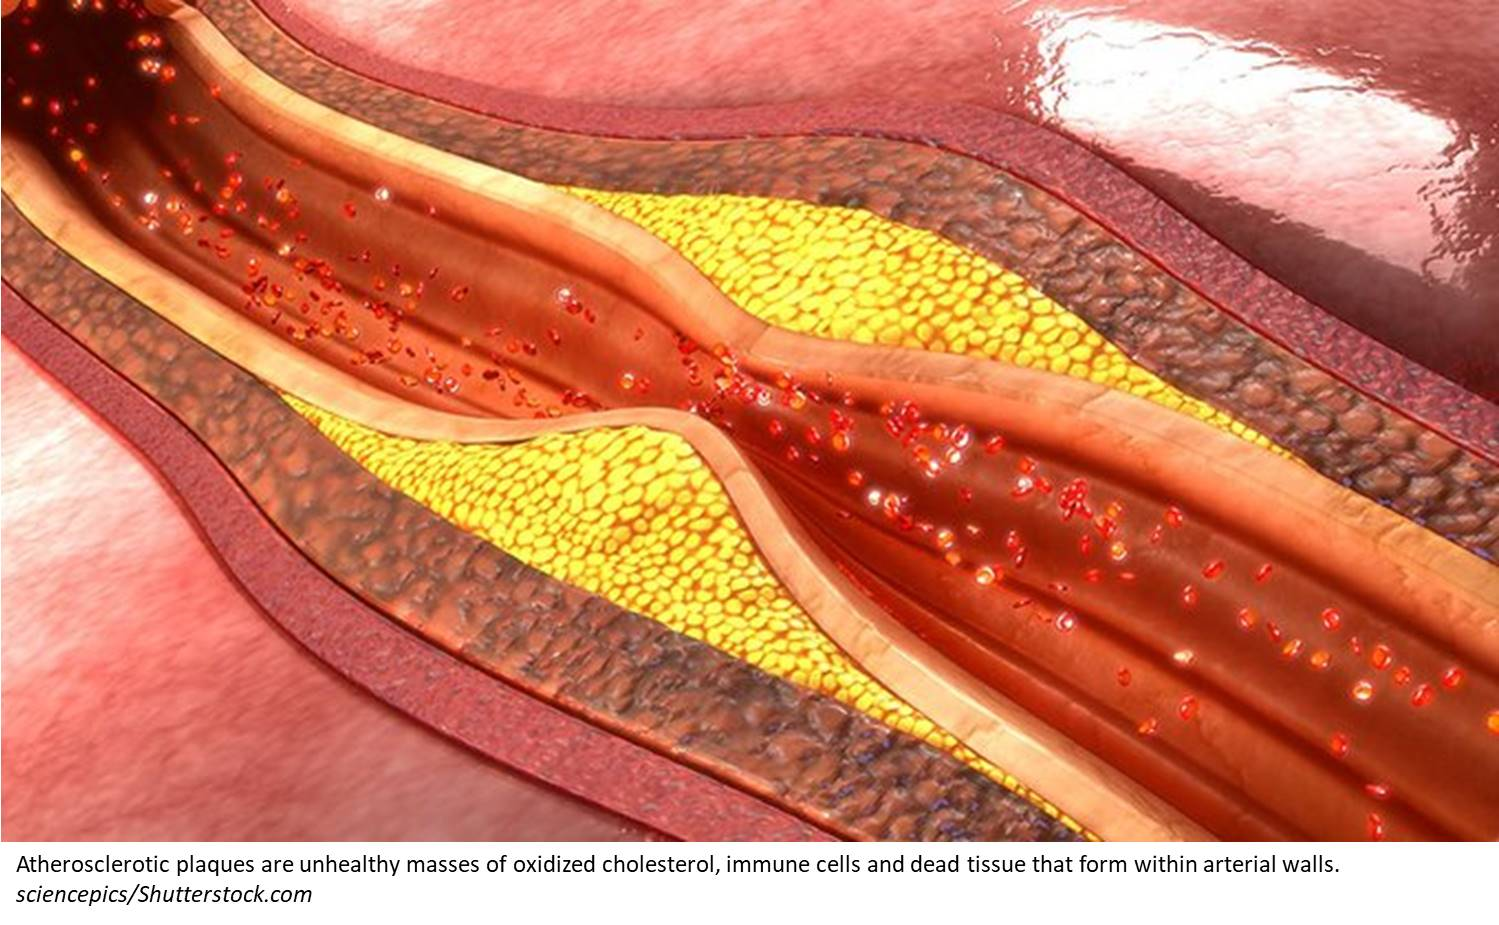 Unregulated smooth muscle cell growth may drive atherosclerosis